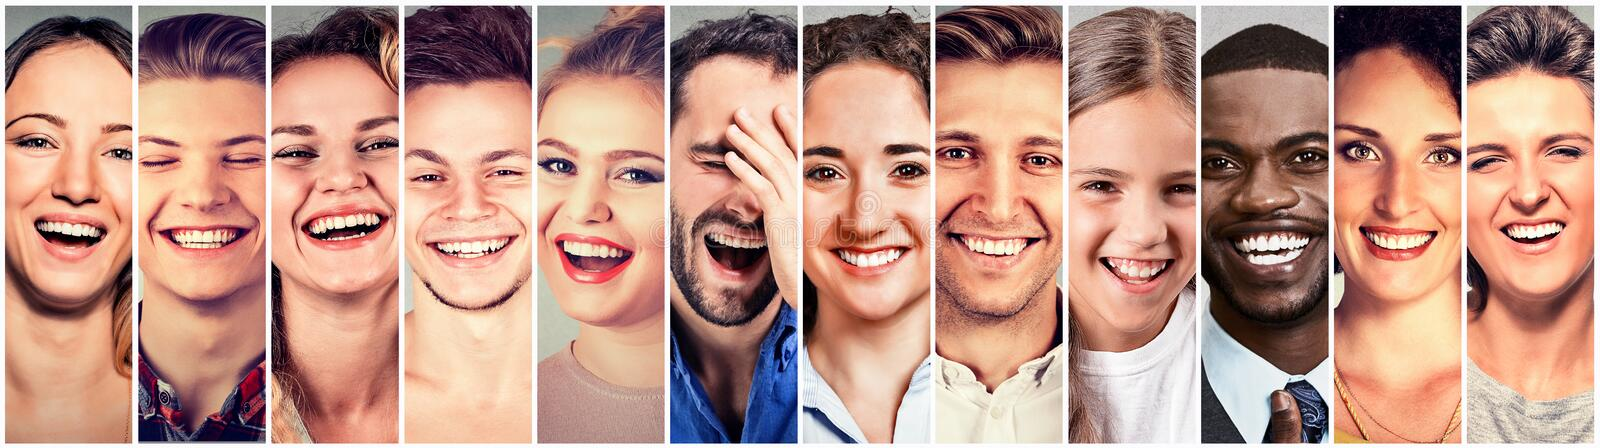 Laughing people. Group happy men, women, children royalty free stock image